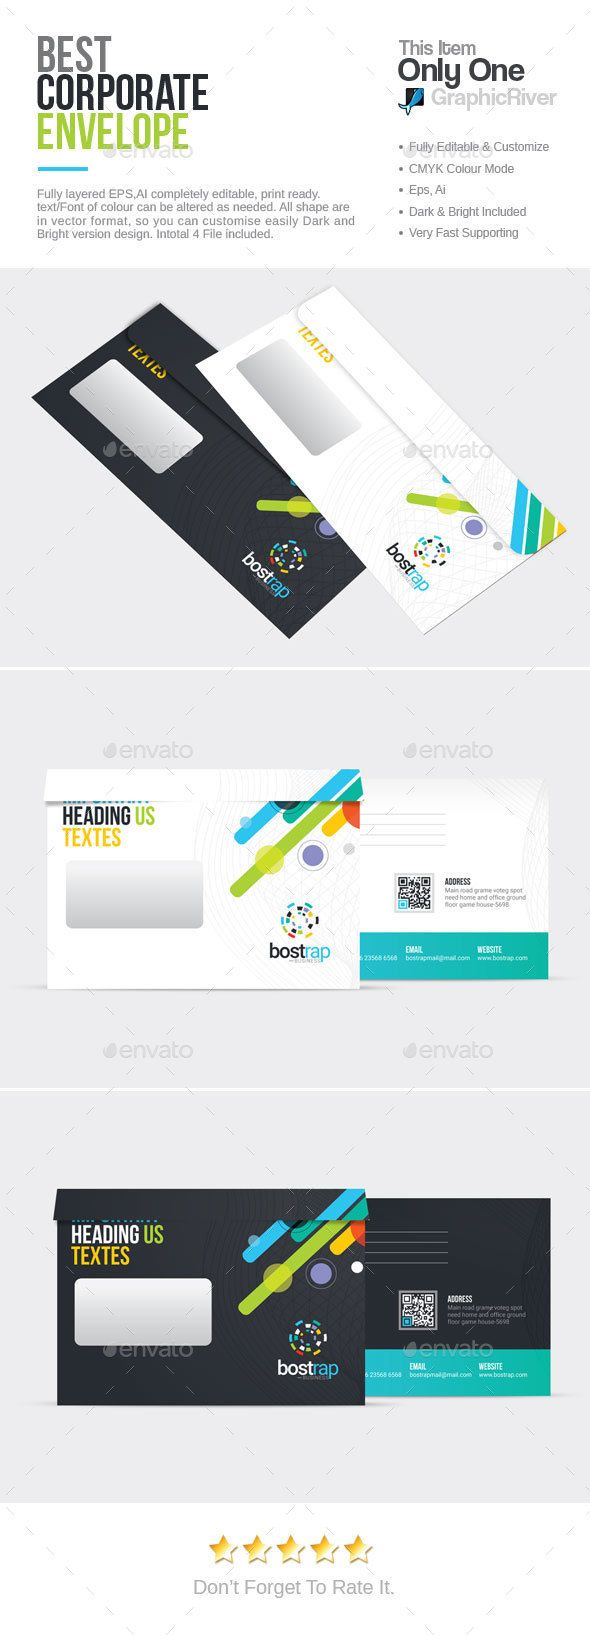 Bootstrap Corporate Envelope Packaging